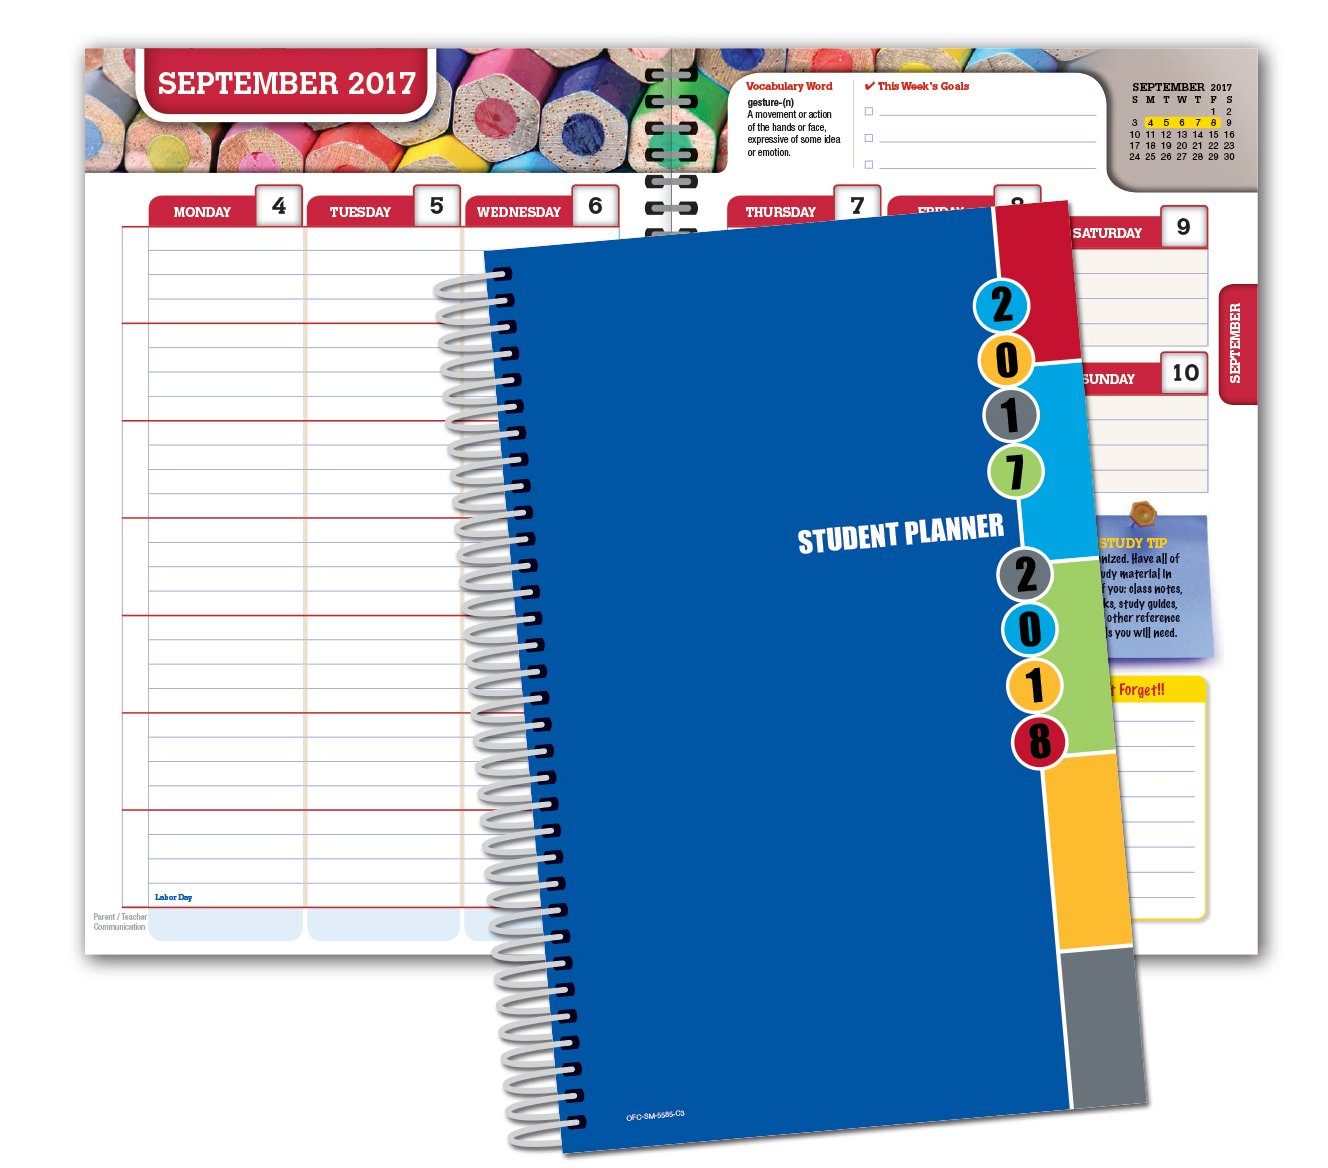 Dated Middle School or High School Student Planner for Academic Year 2018-2019 (Matrix Style - 5.5x8.5 - Blue Colors Cover) - Bonus Ruler/Bookmark and Planning Stickers Global Datebooks